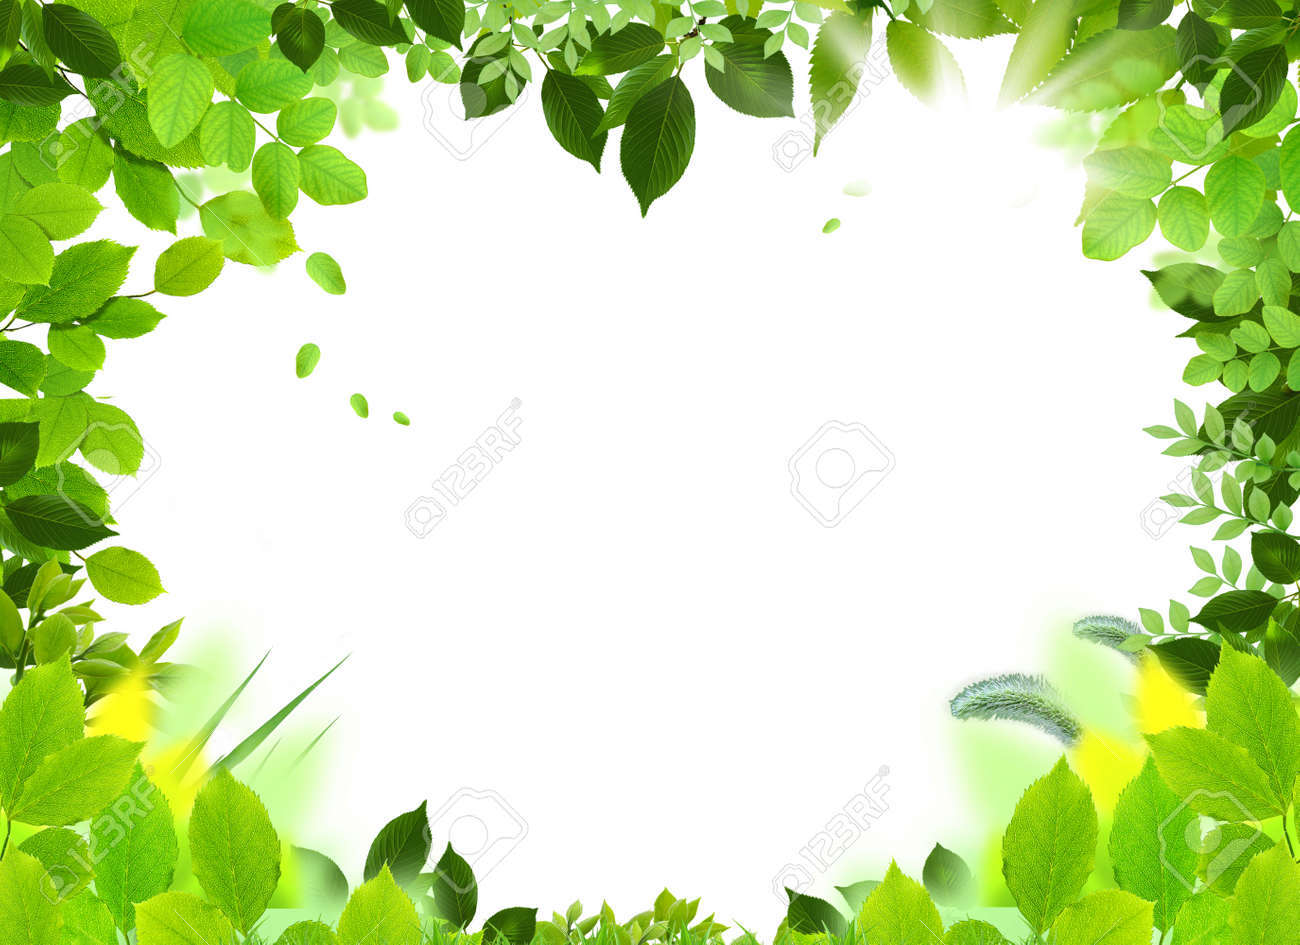 natural design template naturel heart frame beautiful frame stock photo picture and royalty free image image 4768359 natural design template naturel heart frame beautiful frame